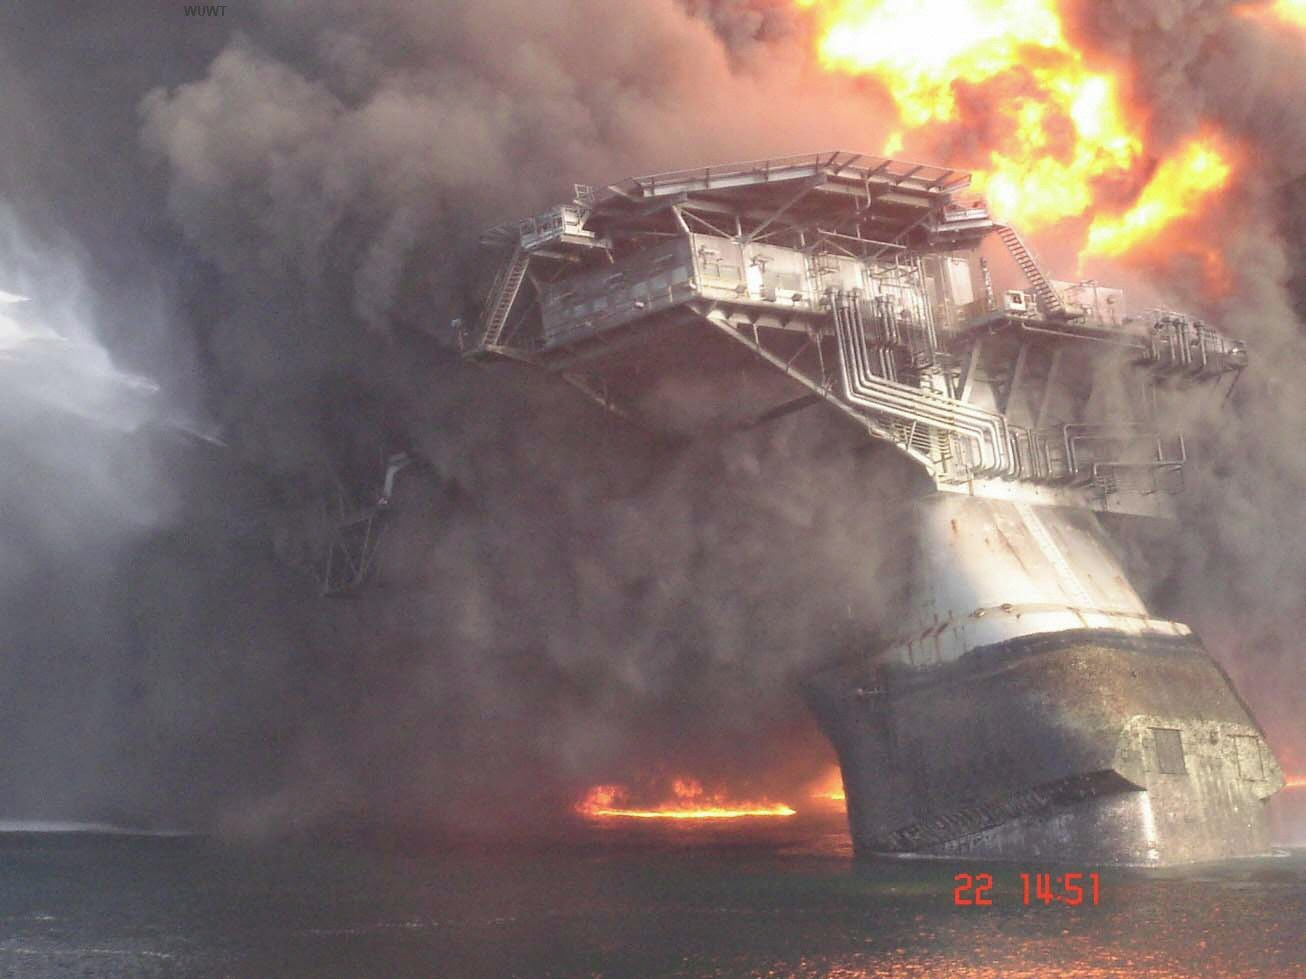 bp oil explosion in the gulf The oil slick spreading across the gulf of mexico has shattered the notion that offshore drilling had become safe a close look at the accident shows that lax federal oversight, complacency by bp and the other companies involved, and the complexities of drilling a mile deep all combined to create the perfect environmental storm.